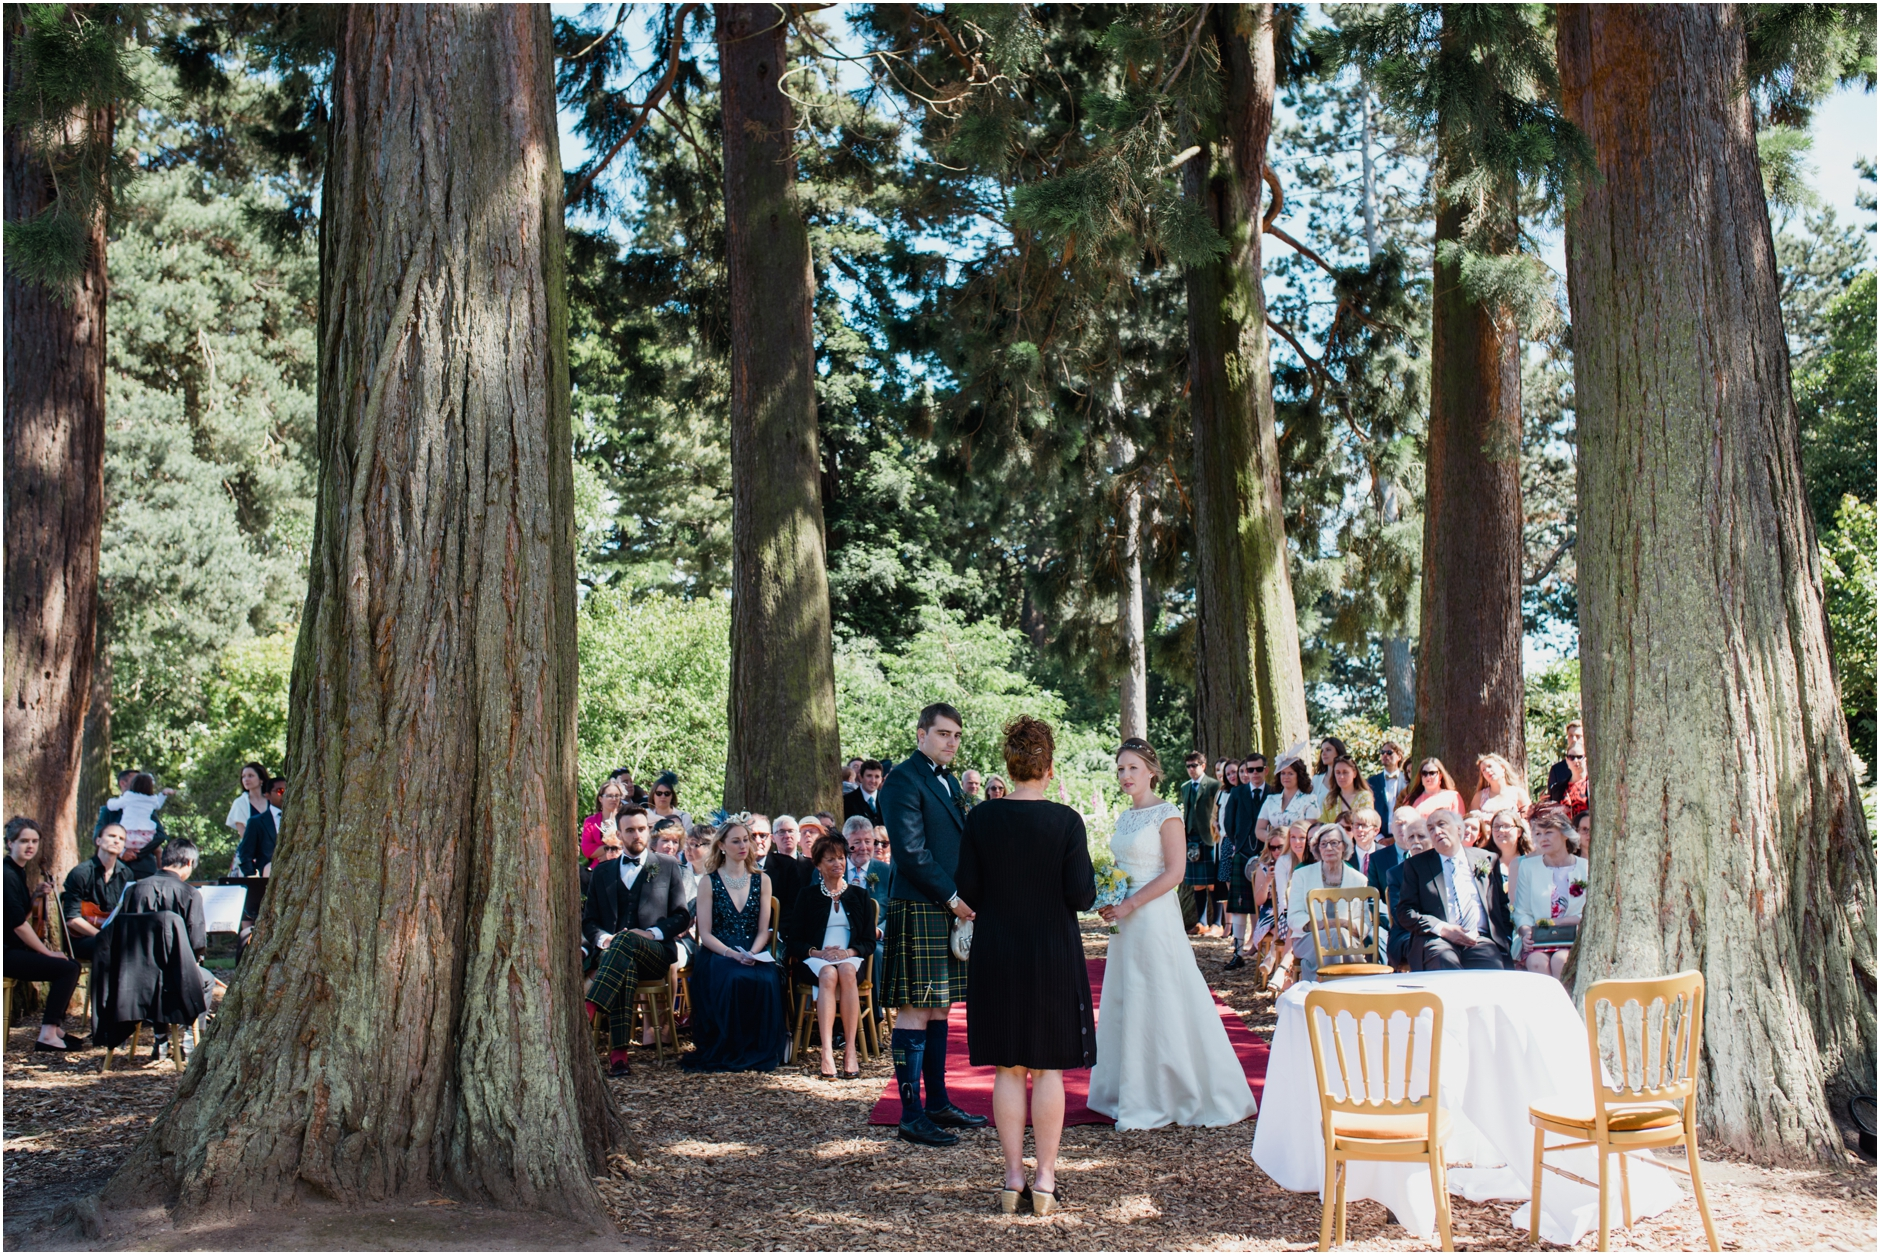 royal botanical gardens wedding edinburgh